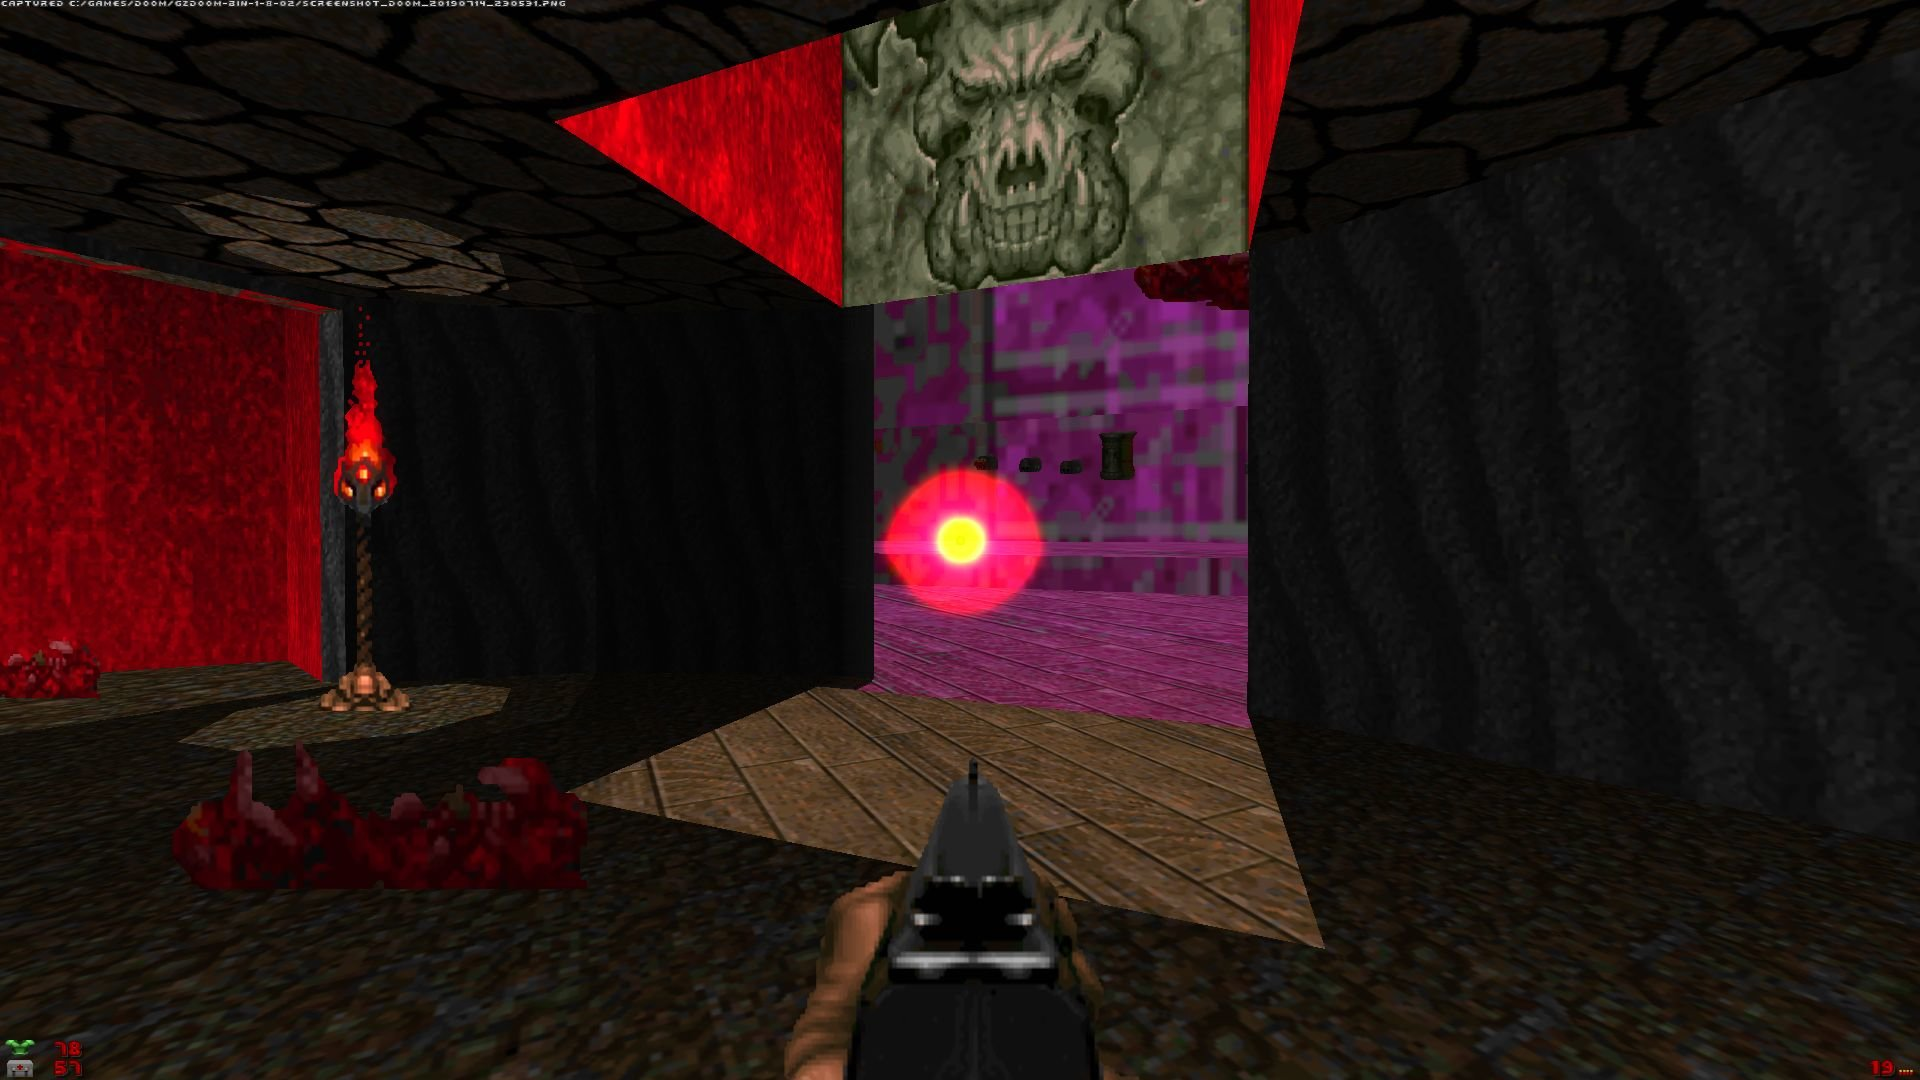 Screenshot_Doom_20190714_230533_1.jpg.229fdb38ac8a6beb7bb5e67c8ff93864.jpg